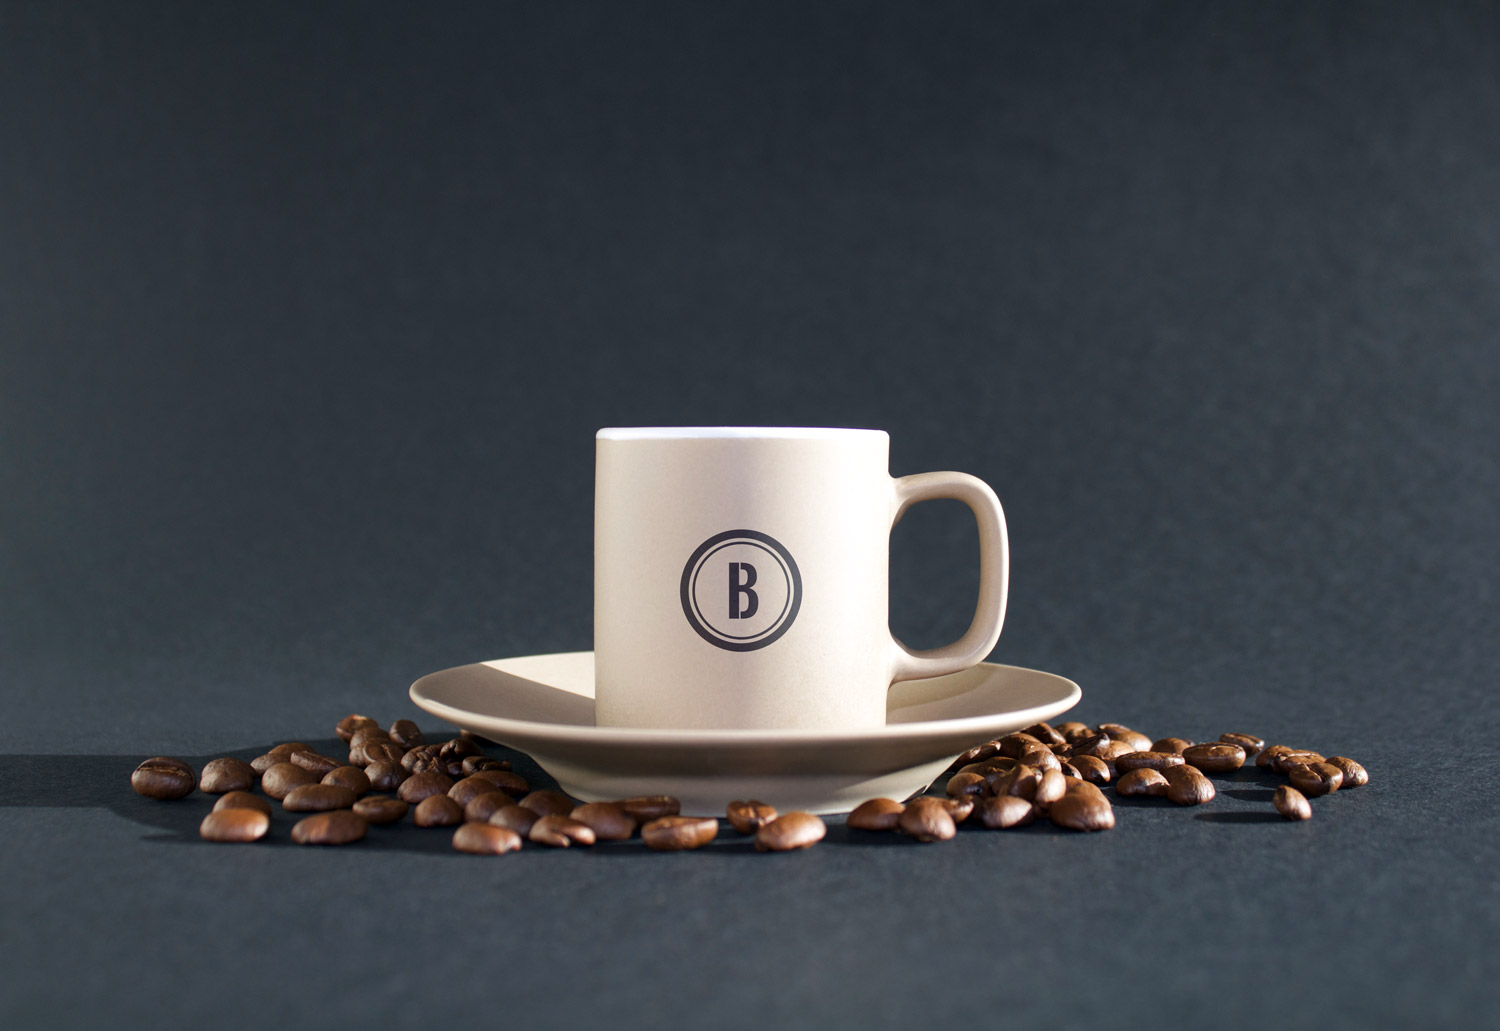 Bakesmiths-Coffee-Shop-Cup-Branding-Logo-Crate-by-Get-it-Sorted.jpg